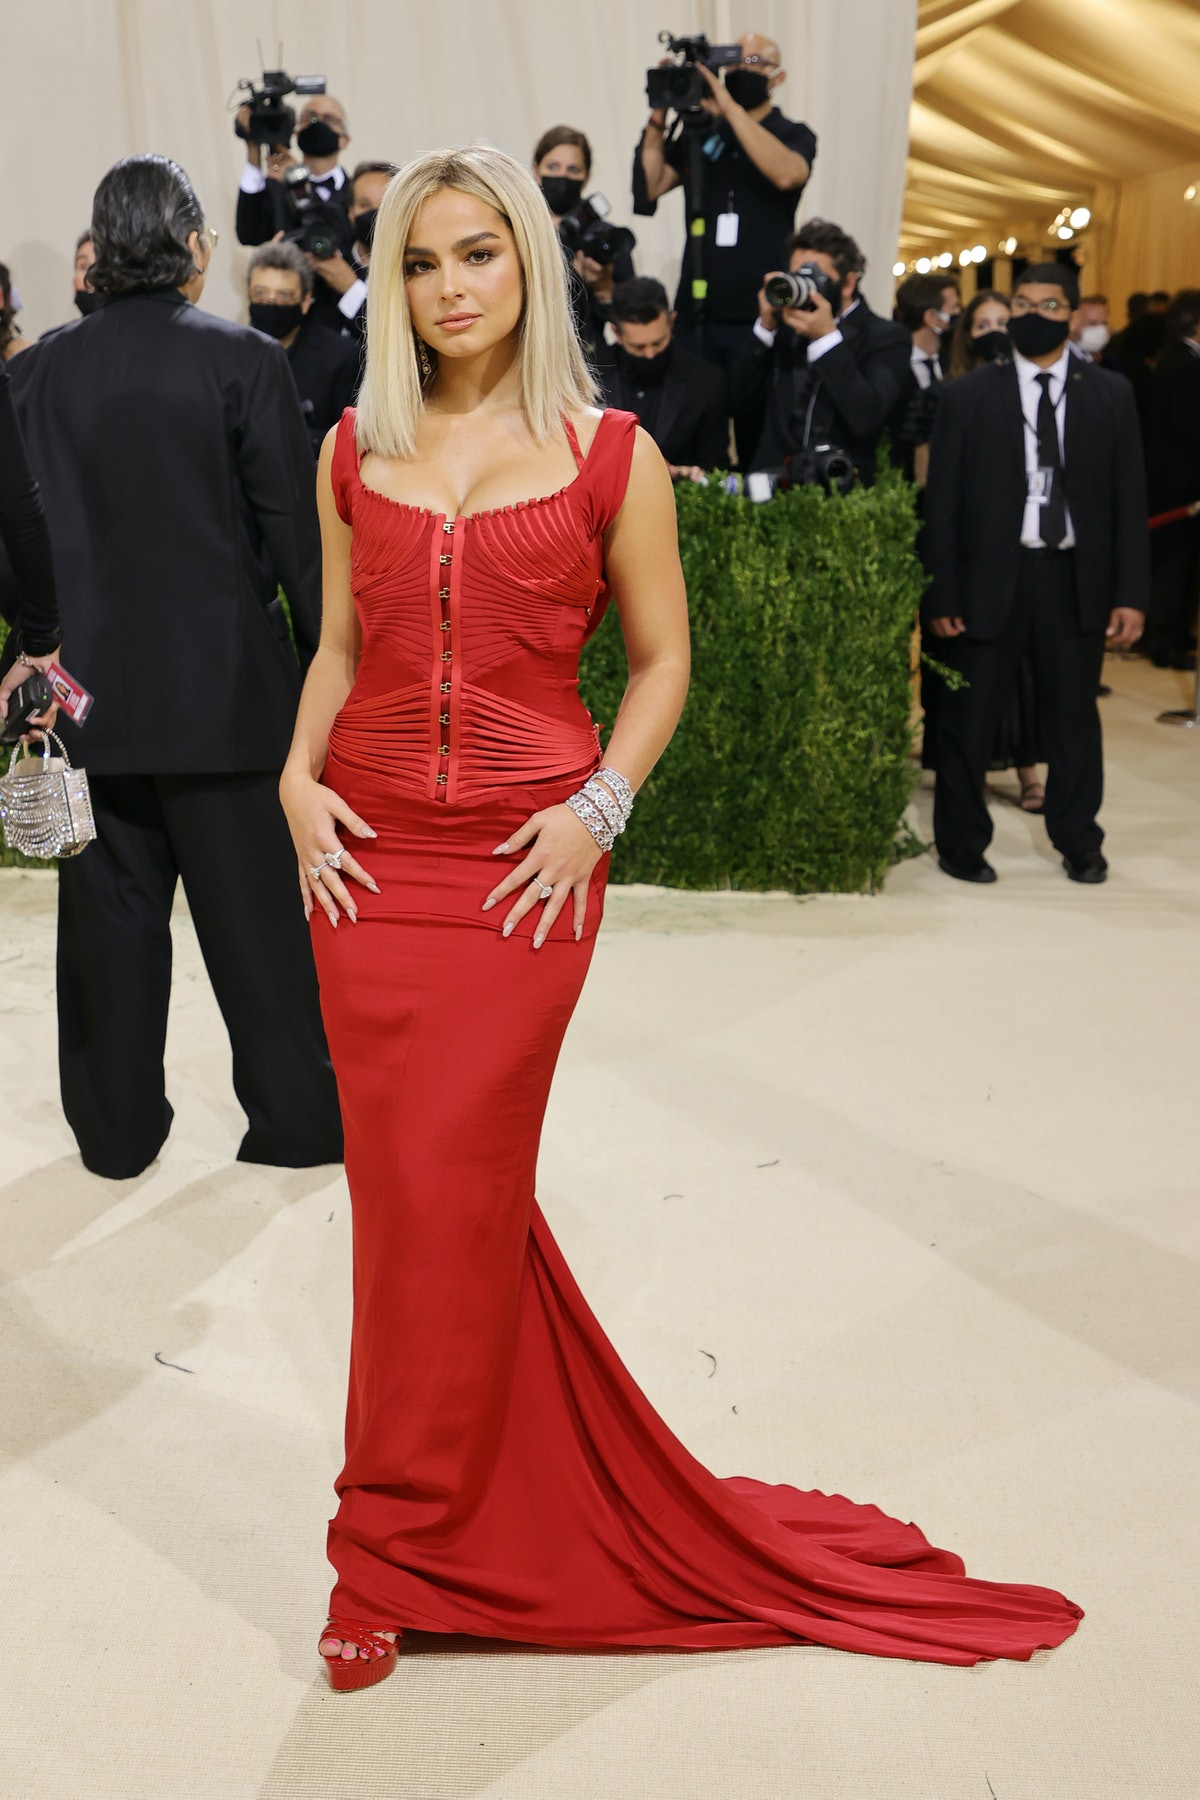 Addison Rae attends The 2021 Met Gala Celebrating In America: A Lexicon Of Fashion at Metropolitan M...